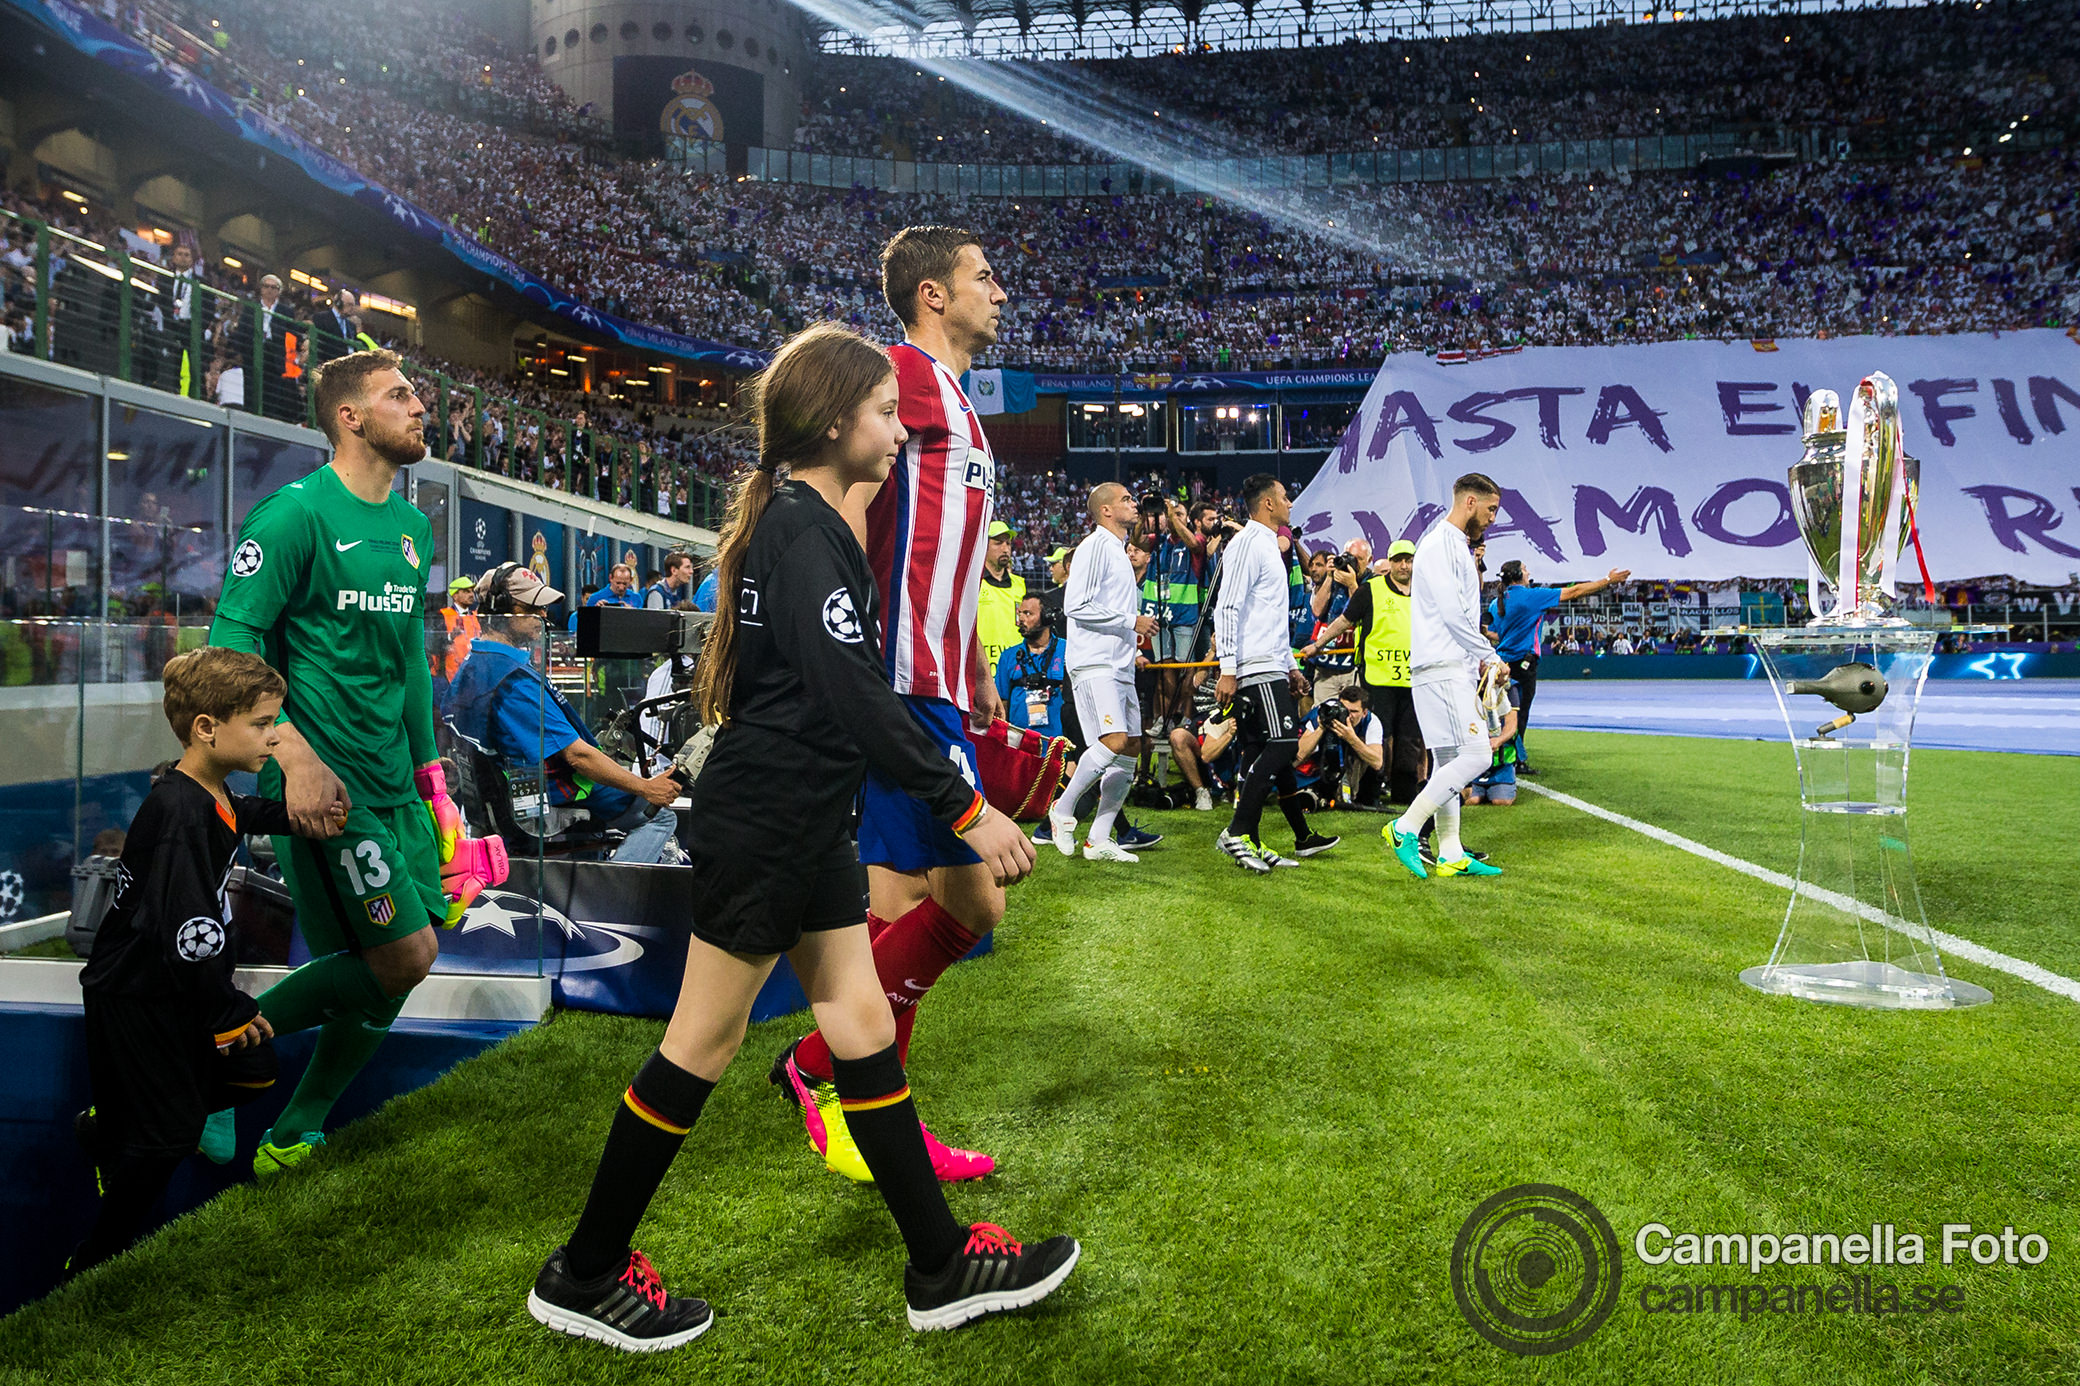 2016 Champions League Final - Michael Campanella Photography